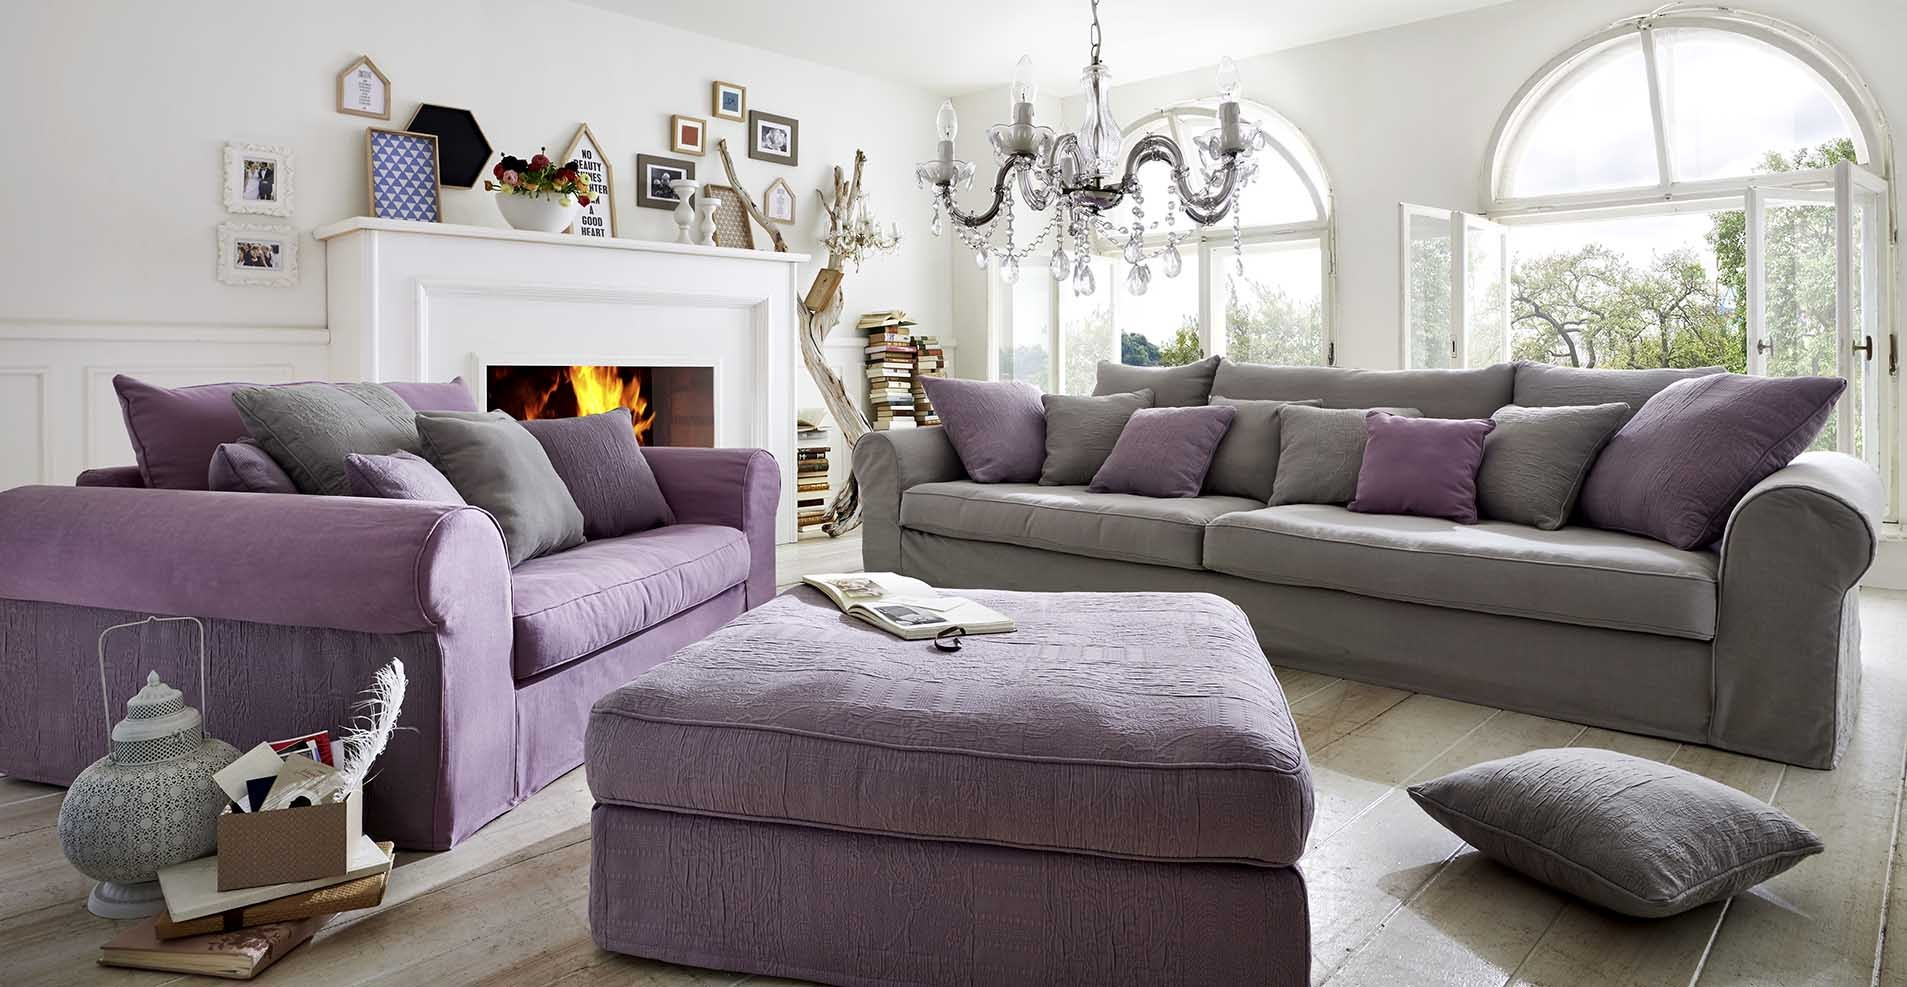 Primavera sofa klassiker mit husse for Sofa landhausstil